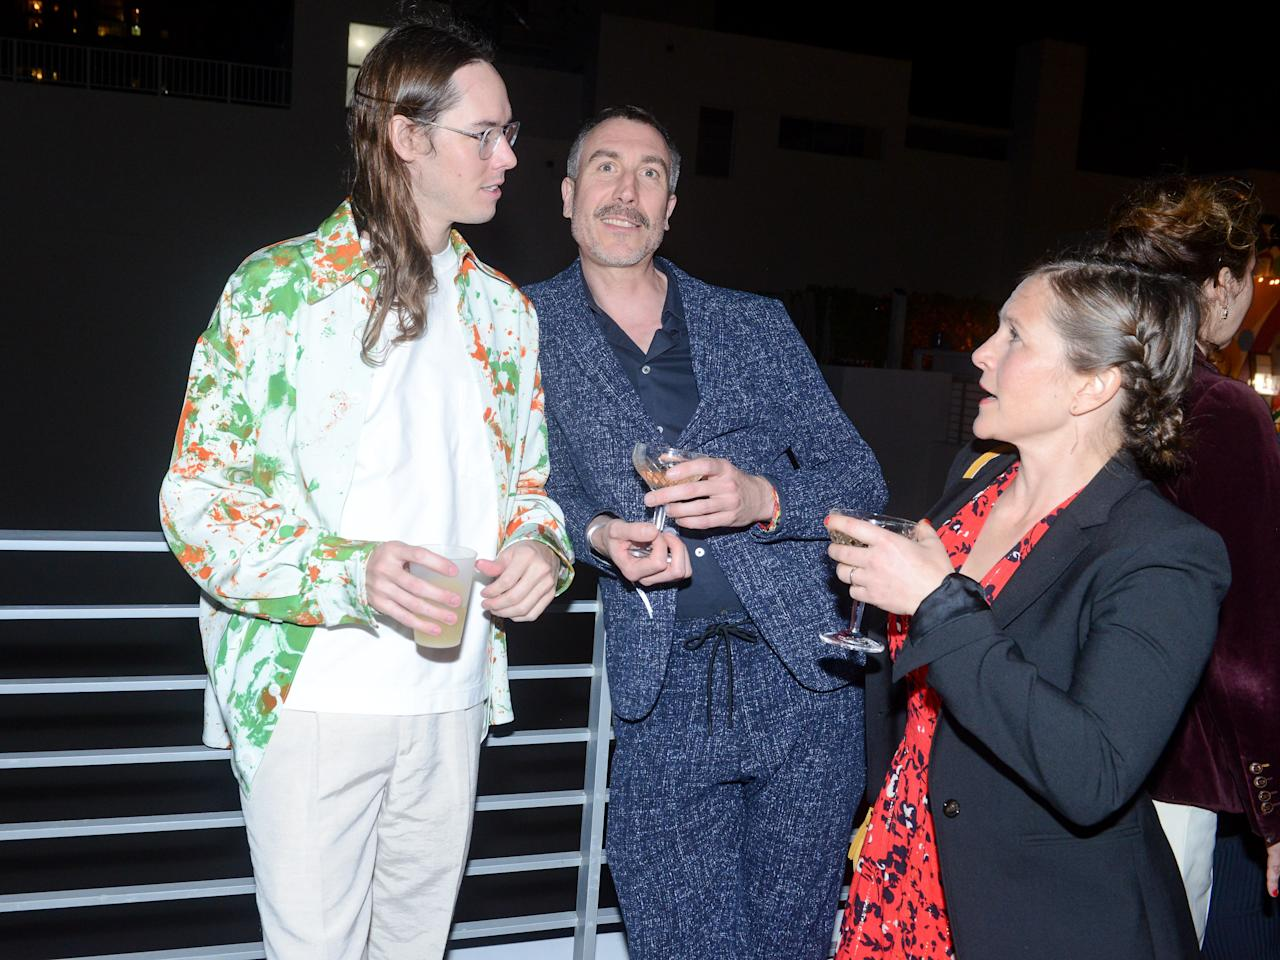 Tyler Britt, Andreas Gegner, and Franziska Von Hasselbach attend ICA Dinner For Sterling Ruby at Soho Beach House.